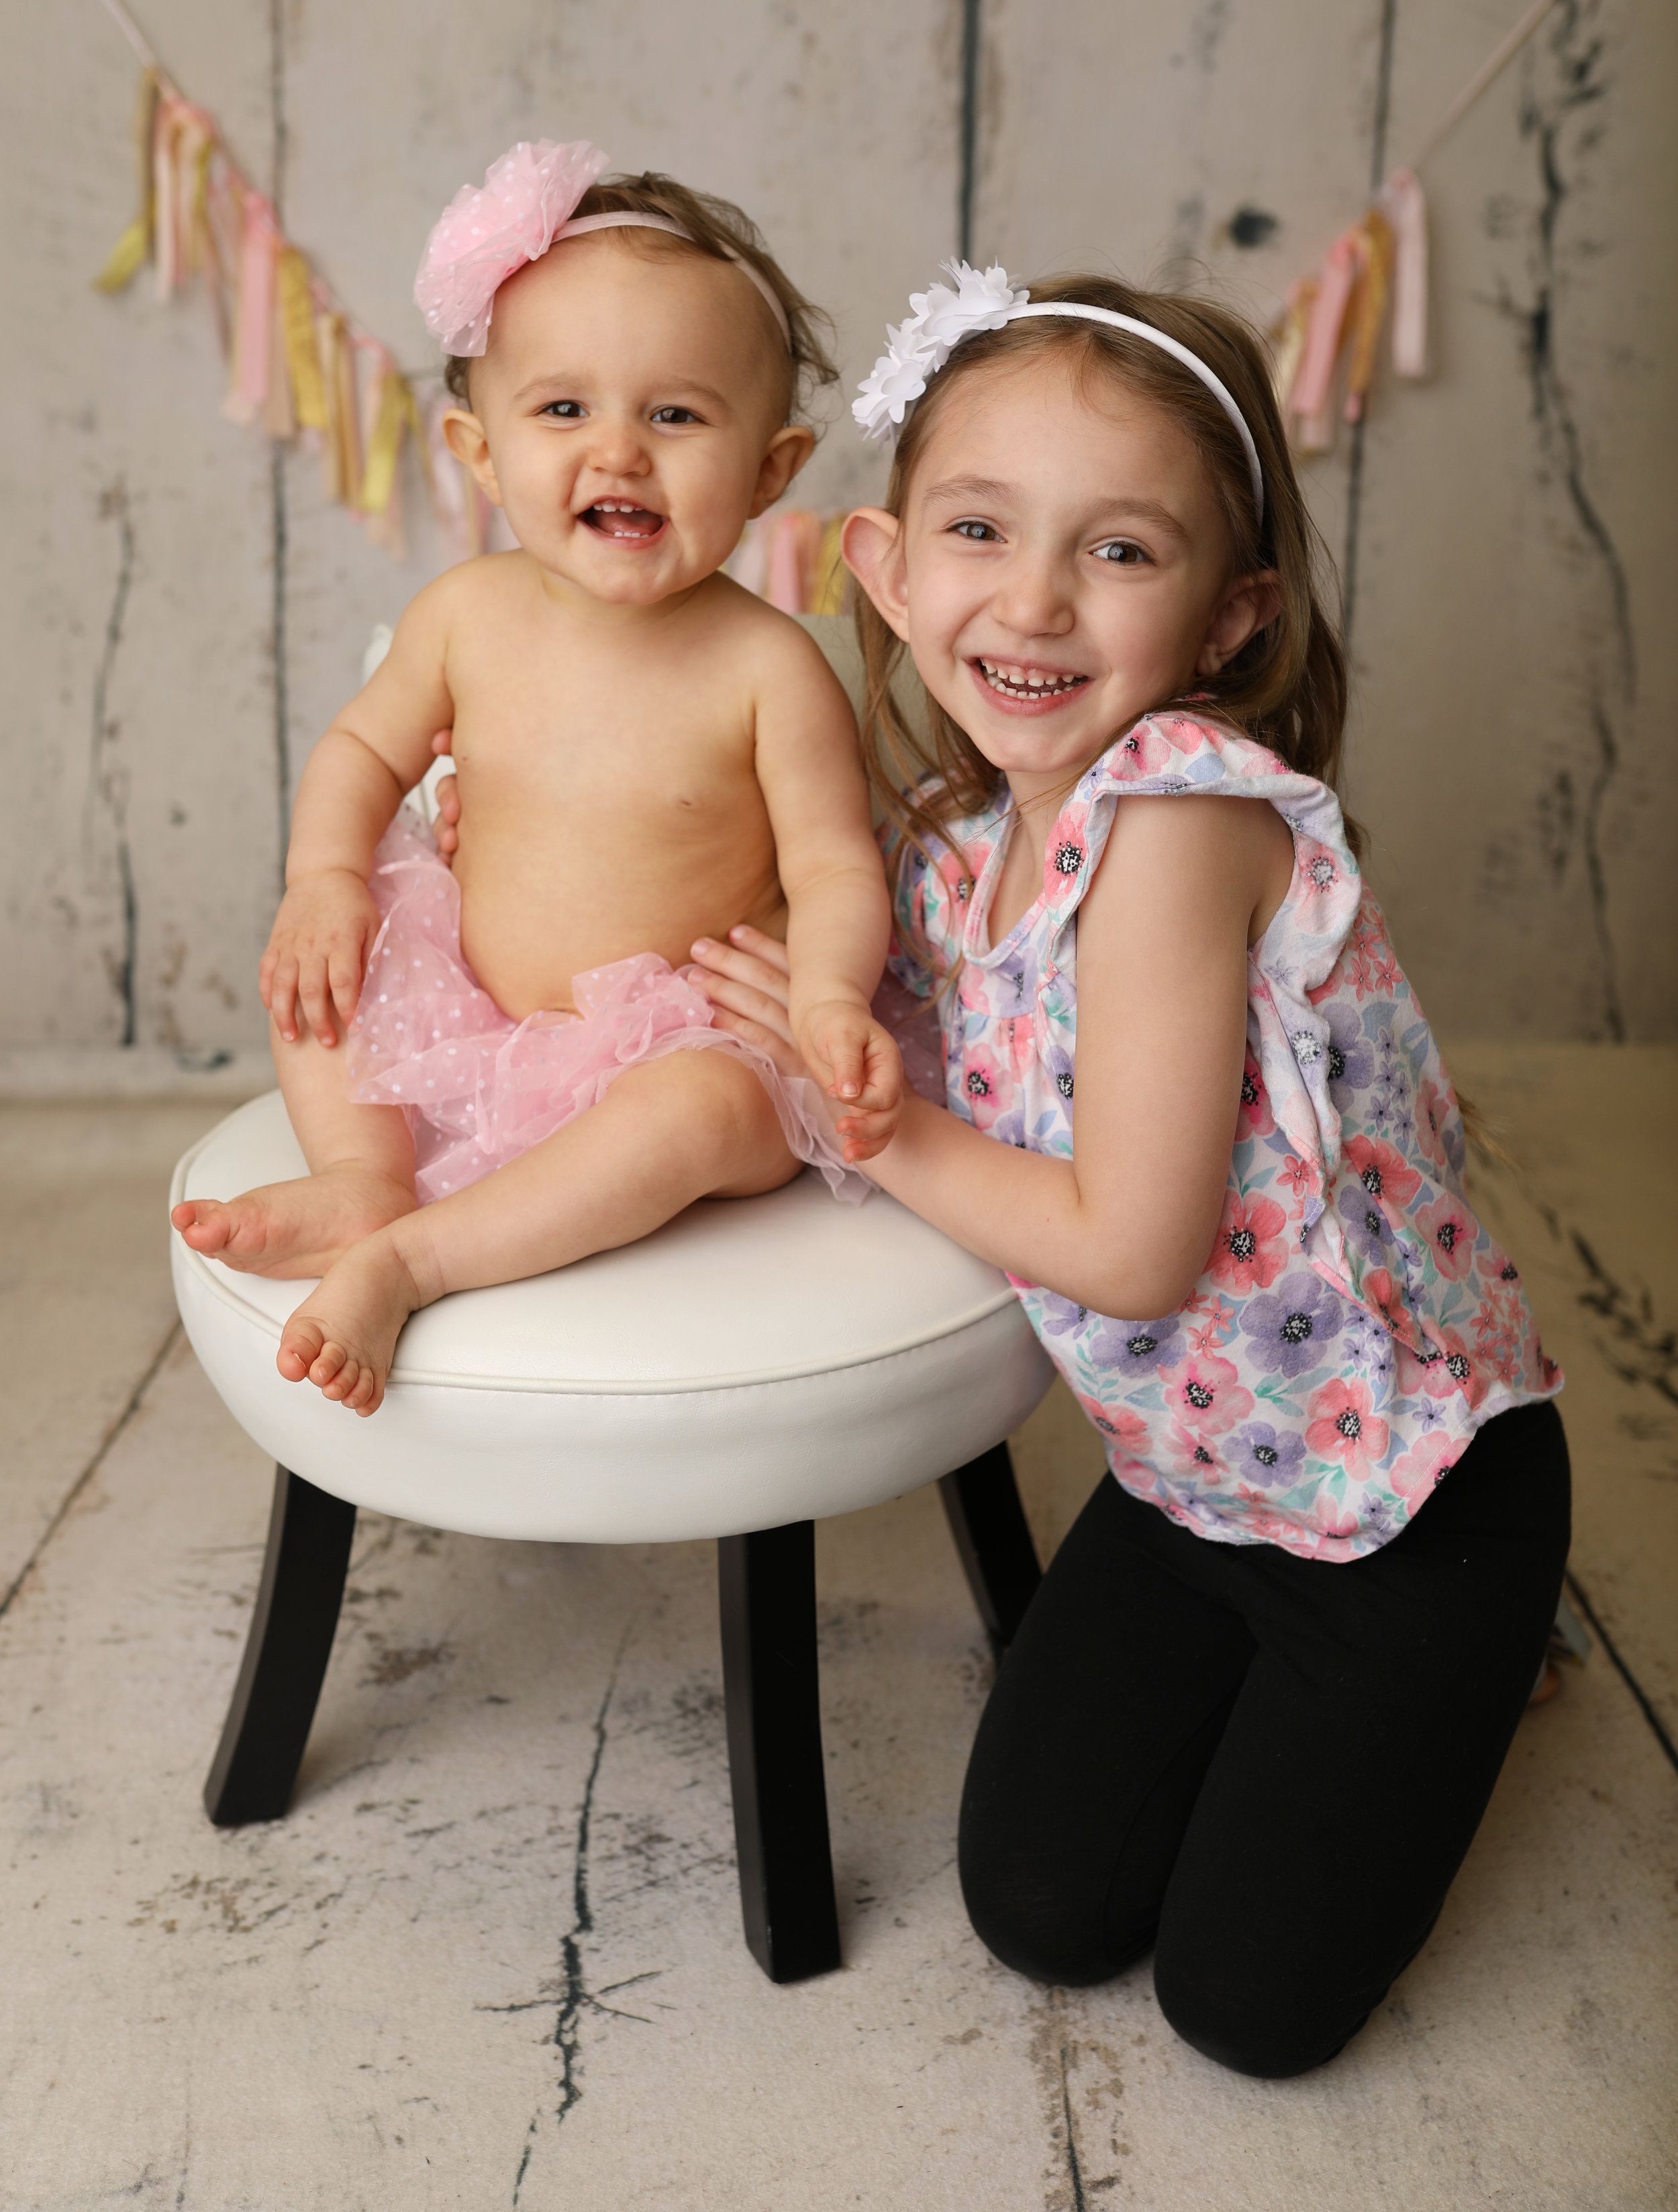 Western new york rochester ny cake smash first birthday photo sessions // digitial photo session downloads rochester ny // best kids photographers near me rochester ny